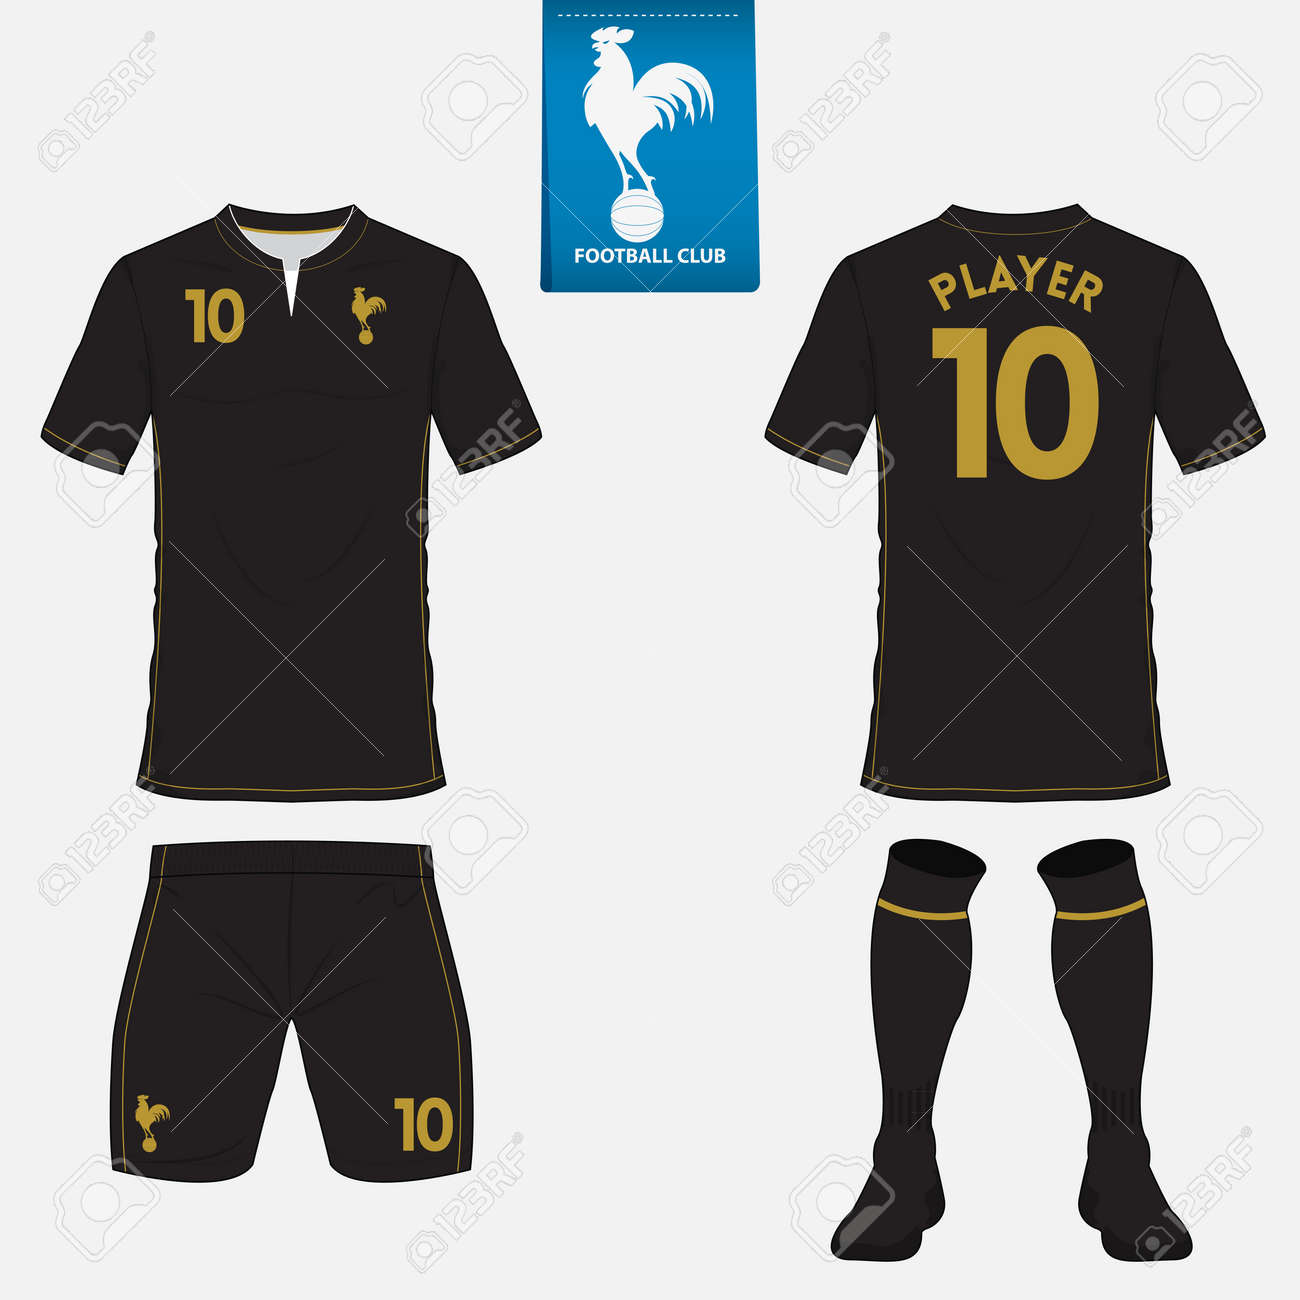 Set Of Soccer Jersey Or Football Kit Template For Football Club ...